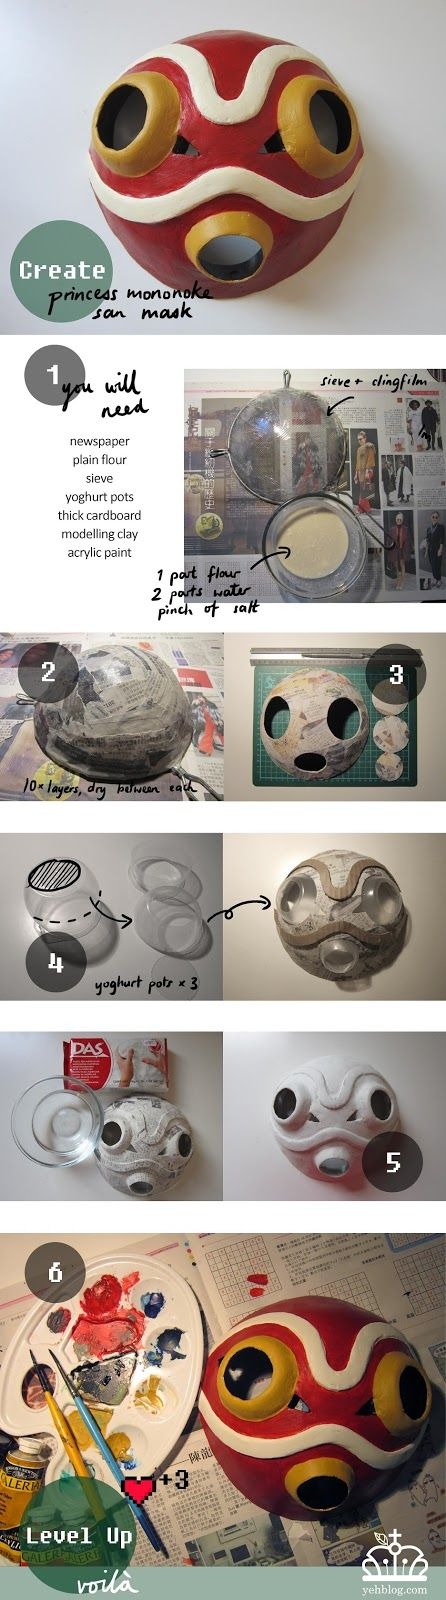 Check out our tutorial!  yeh!blog: DIY How to make Princess Mononoke Mask